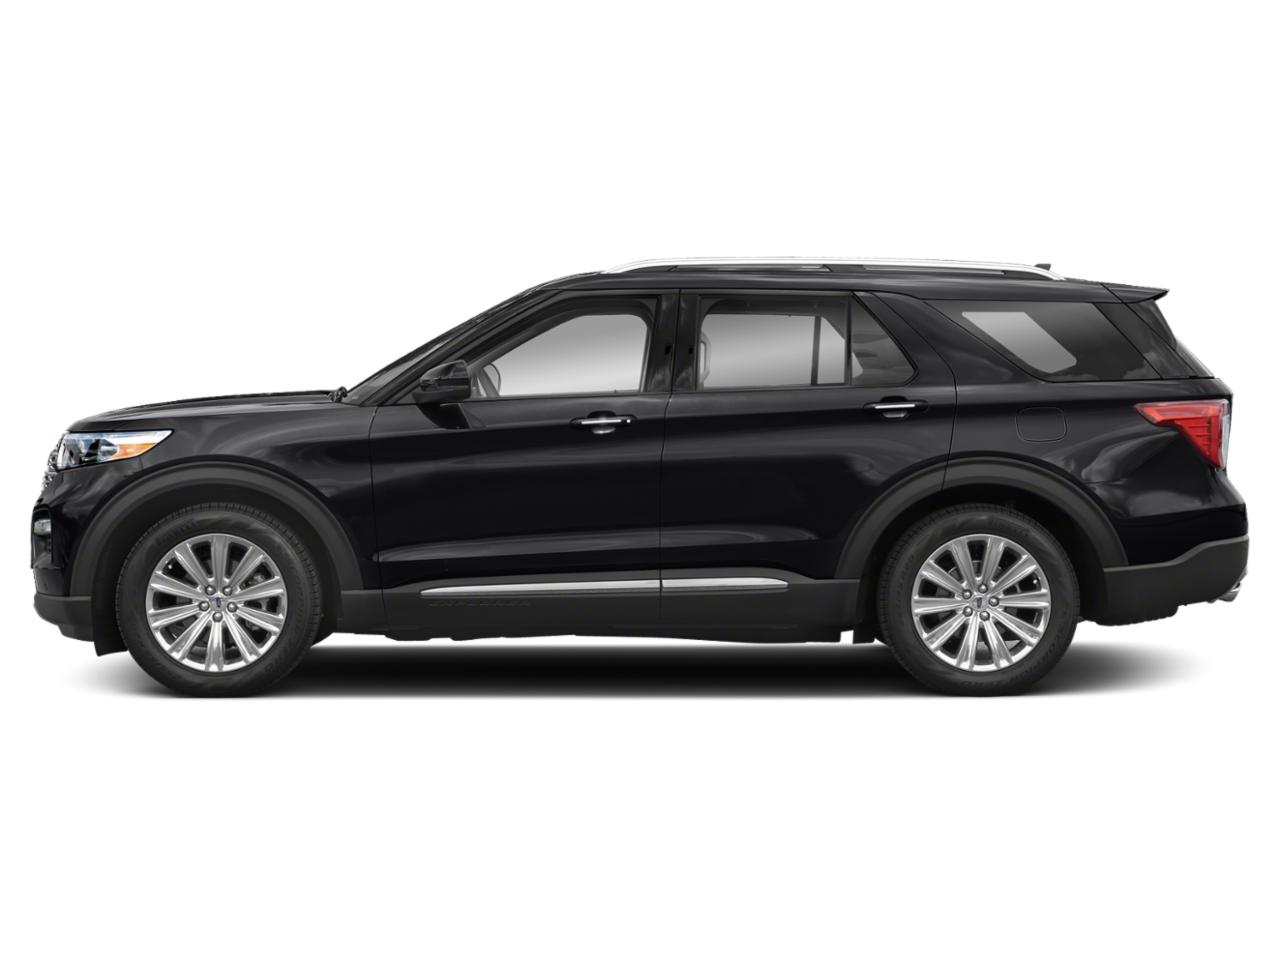 new agate black metallic 2020 ford explorer limited rwd